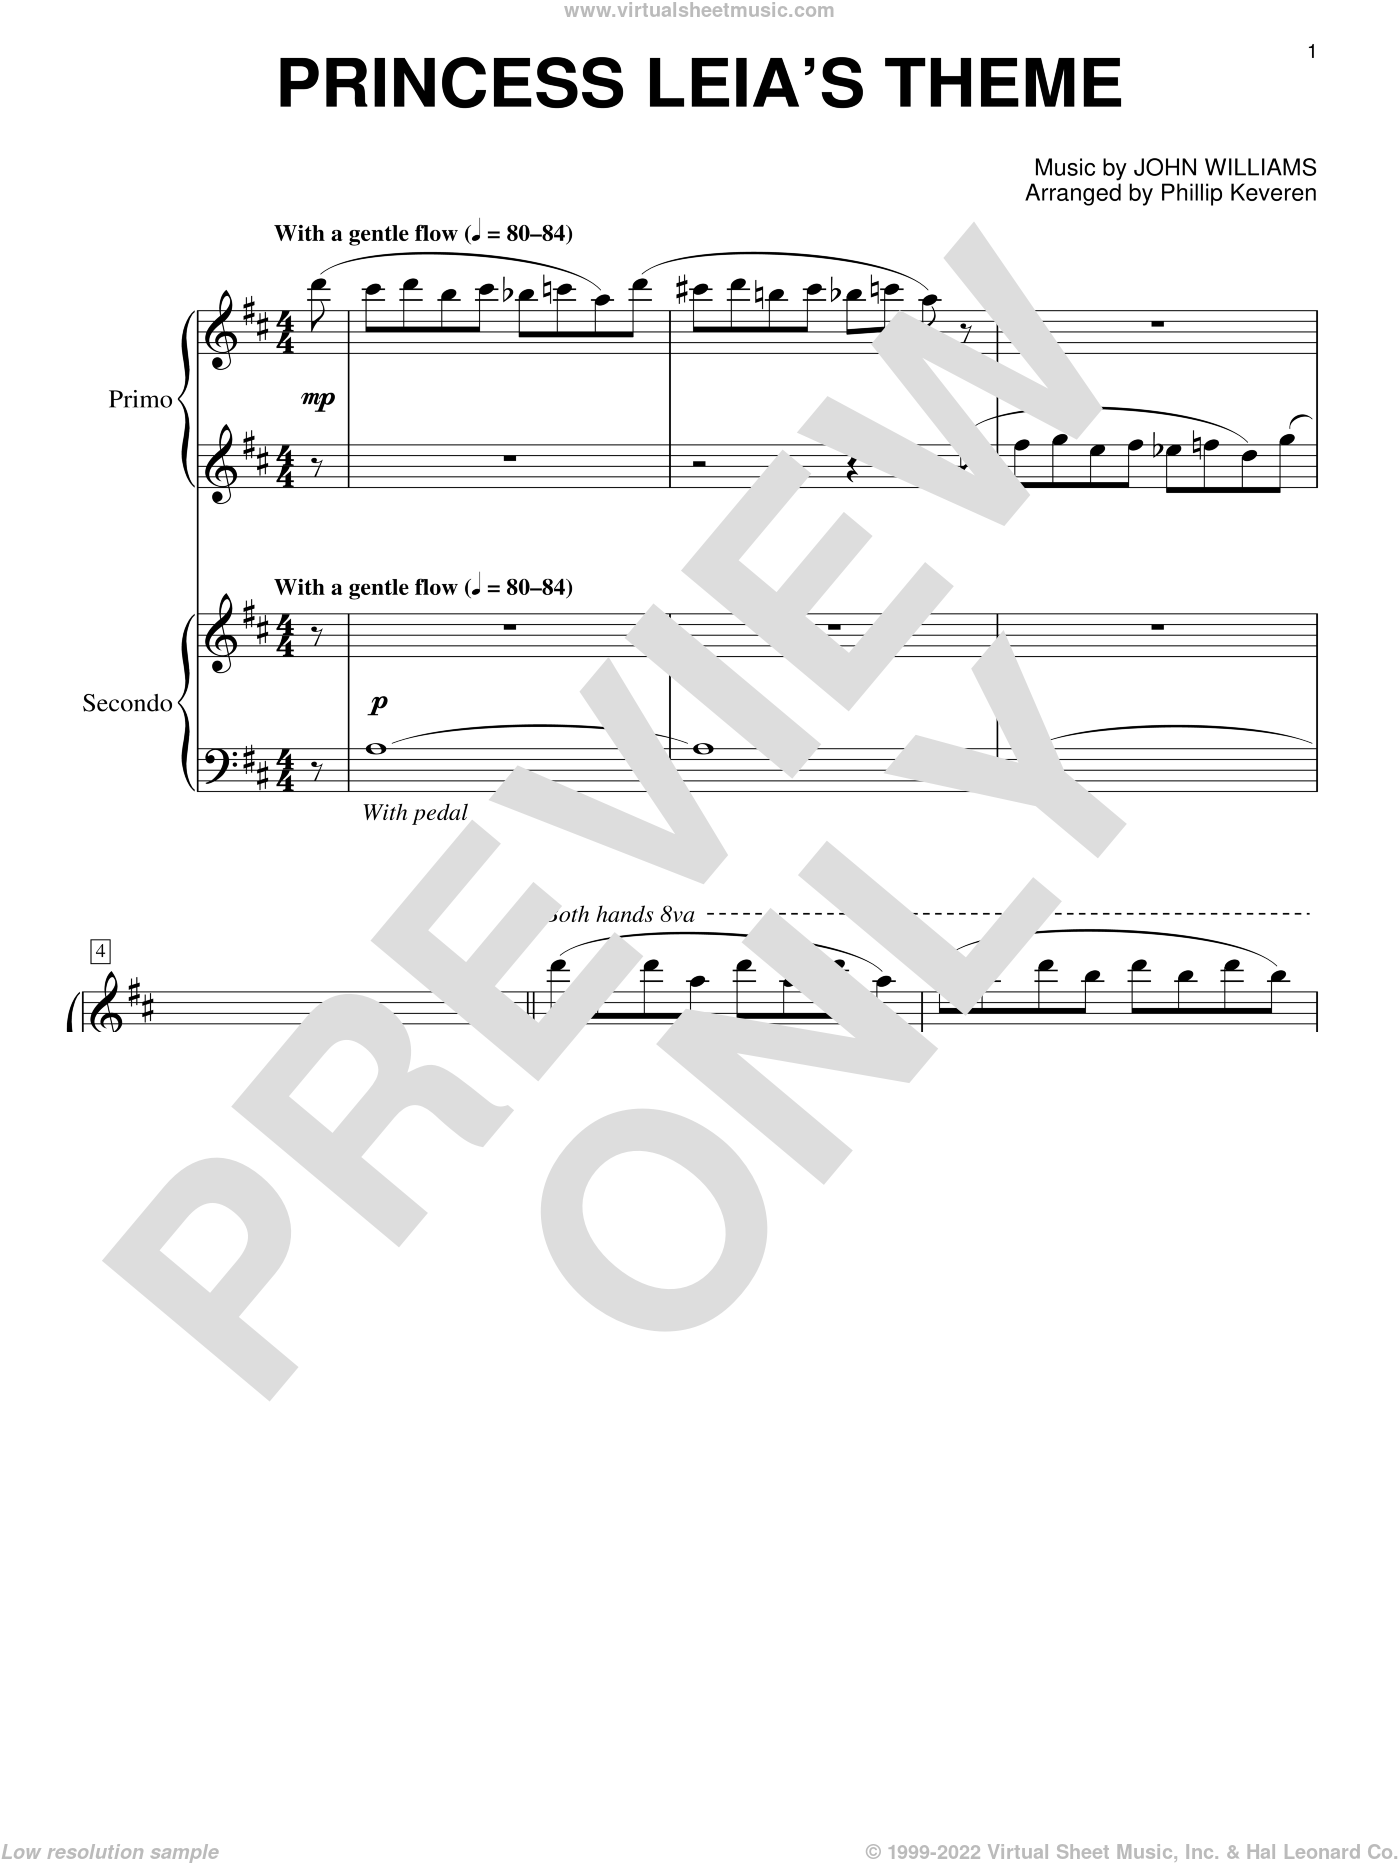 Princess Leia's Theme sheet music for piano four hands by John Williams and Phillip Keveren, classical score, intermediate skill level